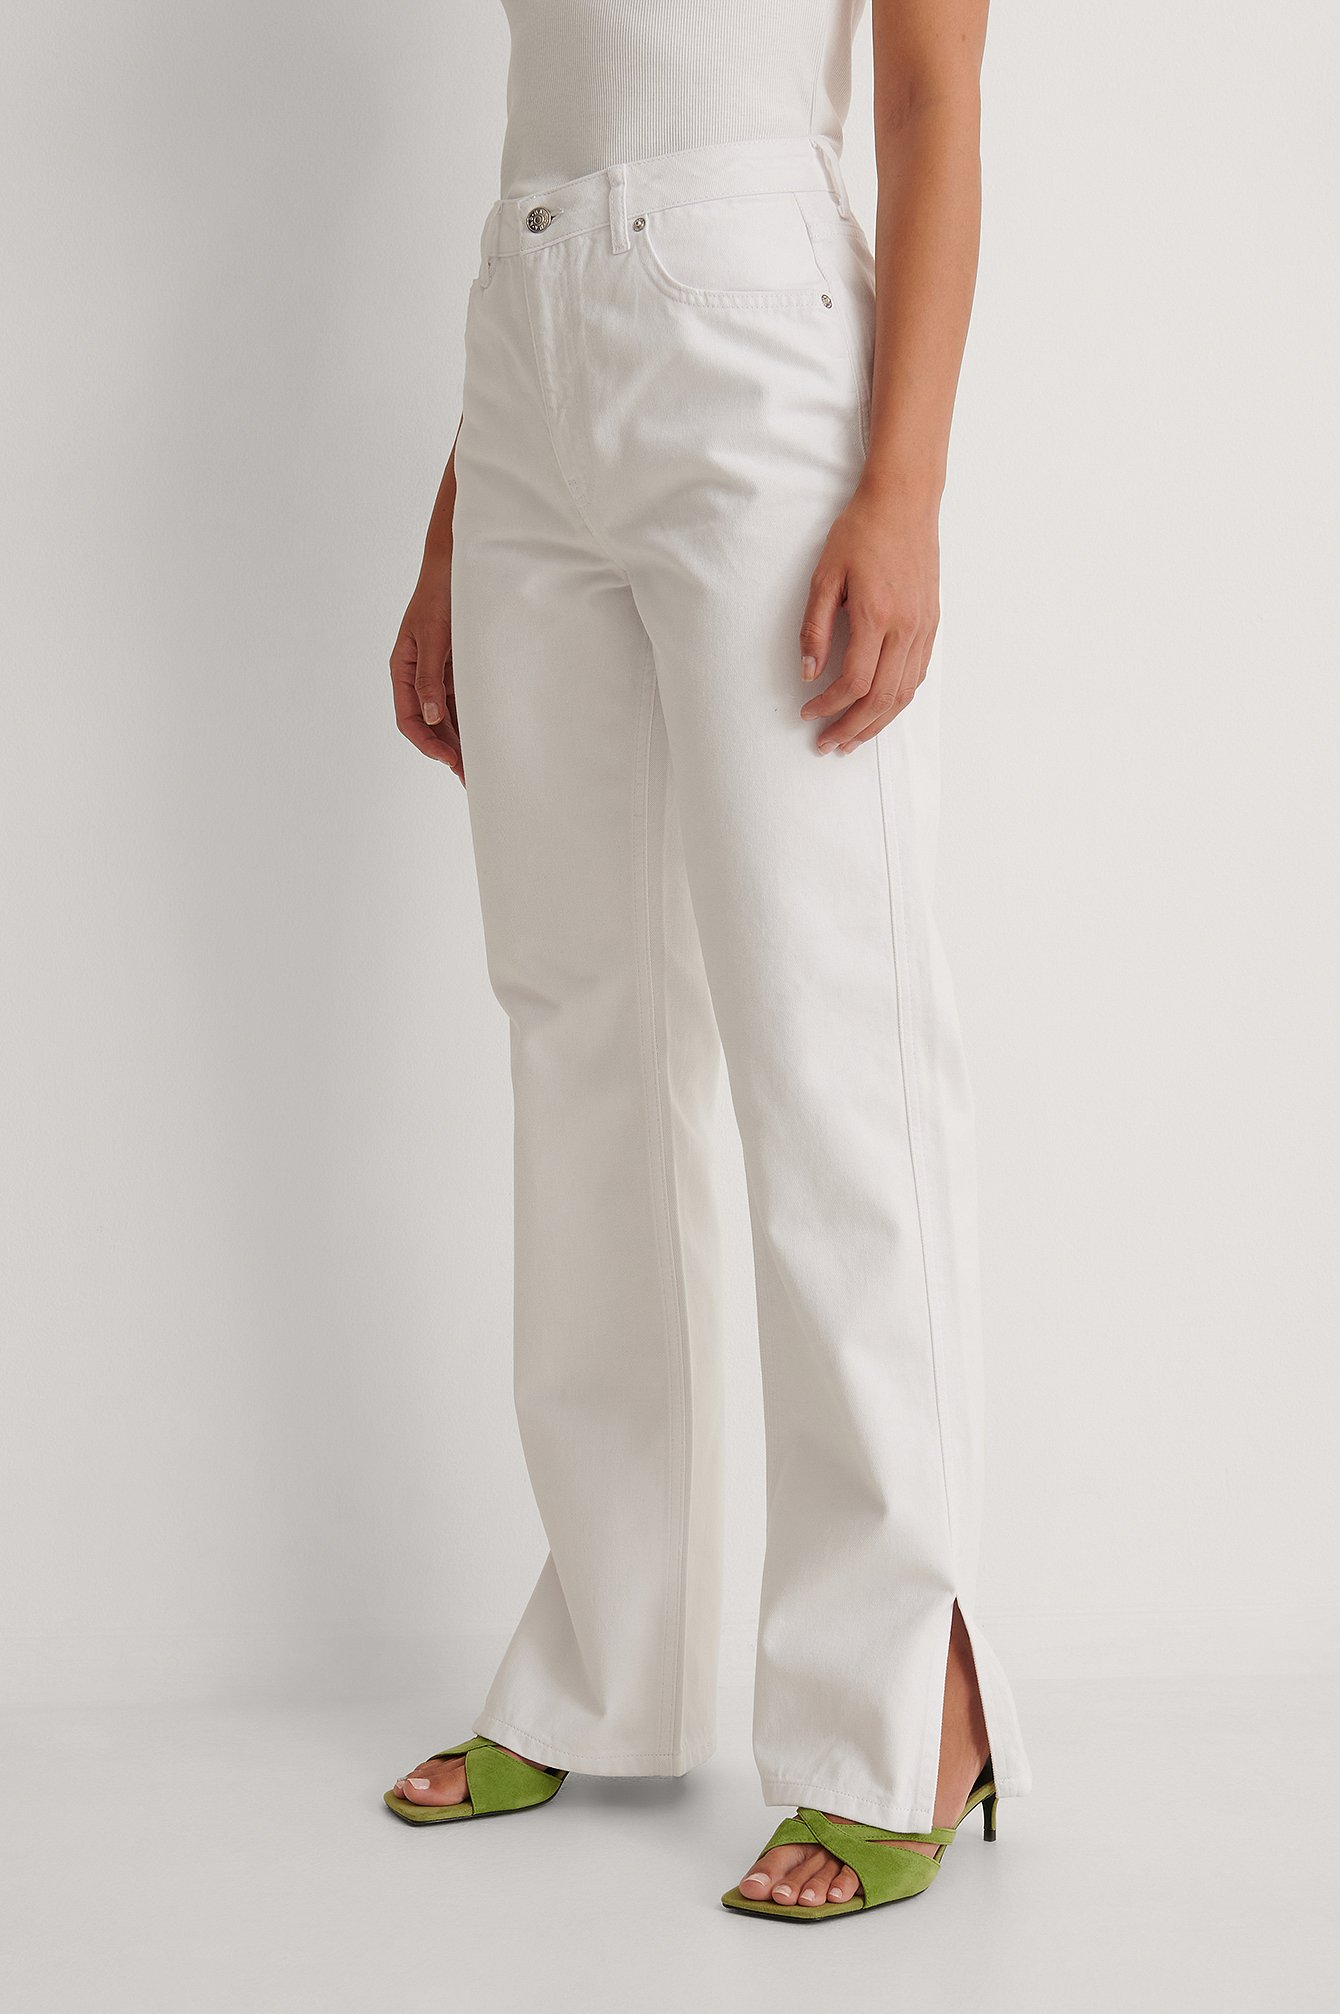 White High Waist Straight Side Slit Jeans